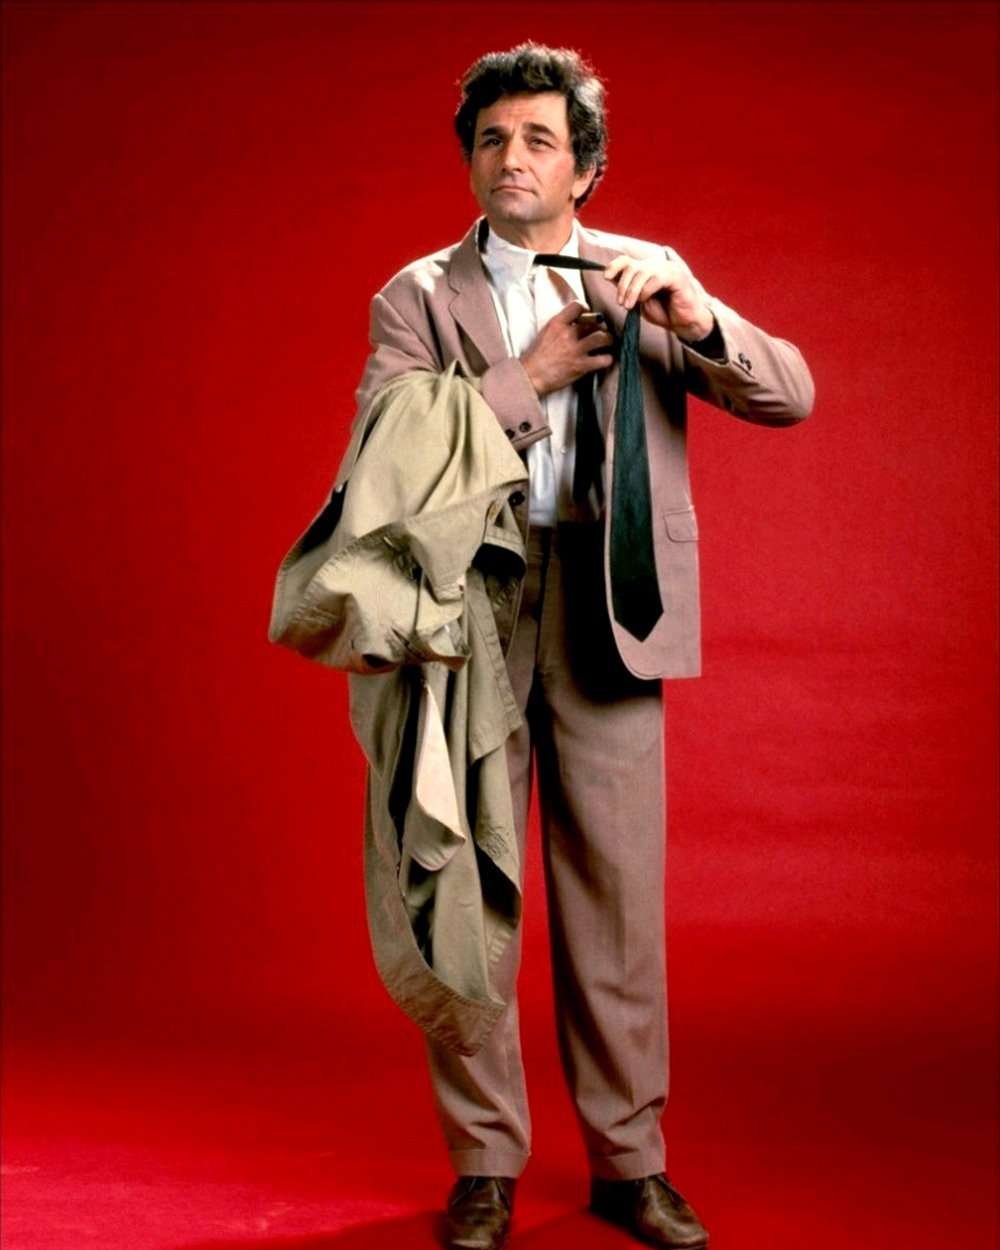 PETER FALK AS ICONIC HOMICIDE DETECTIVE LIEUTENANT COLUMBO - 8X10 PHOTO (CC-136)